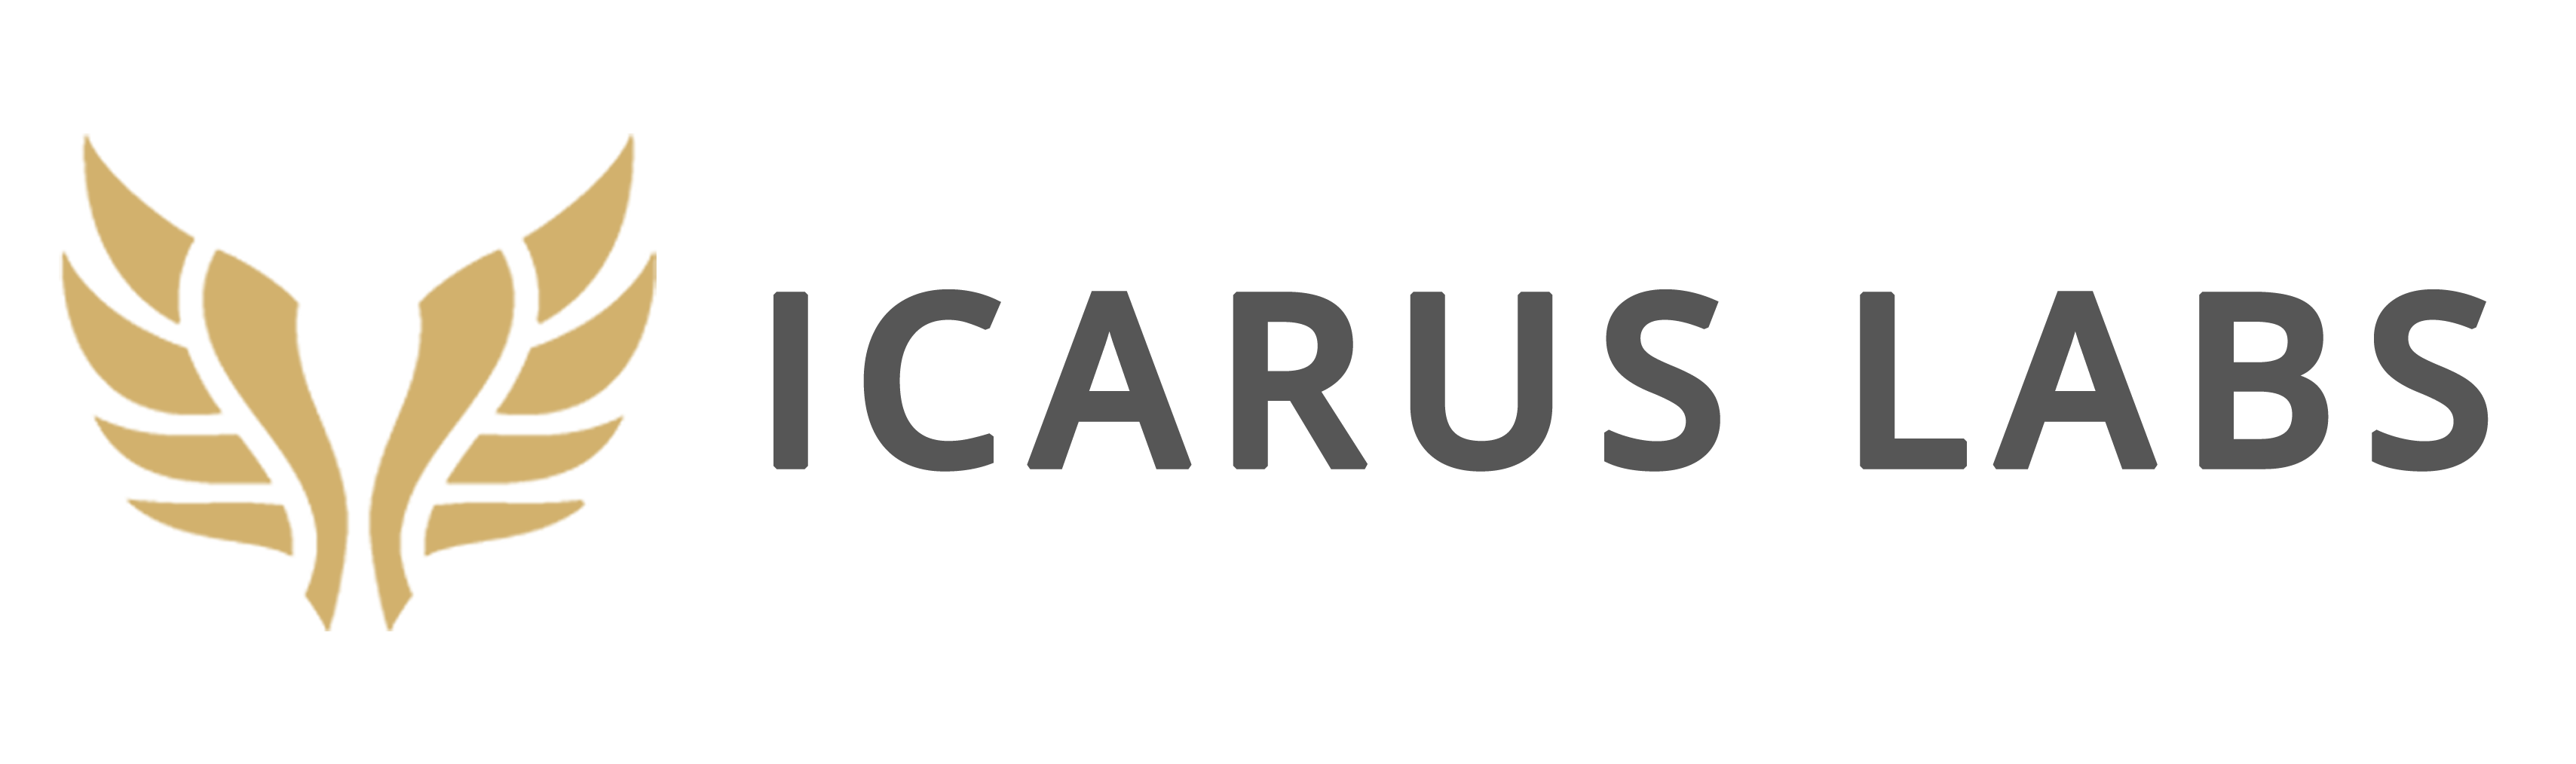 Icarus Labs